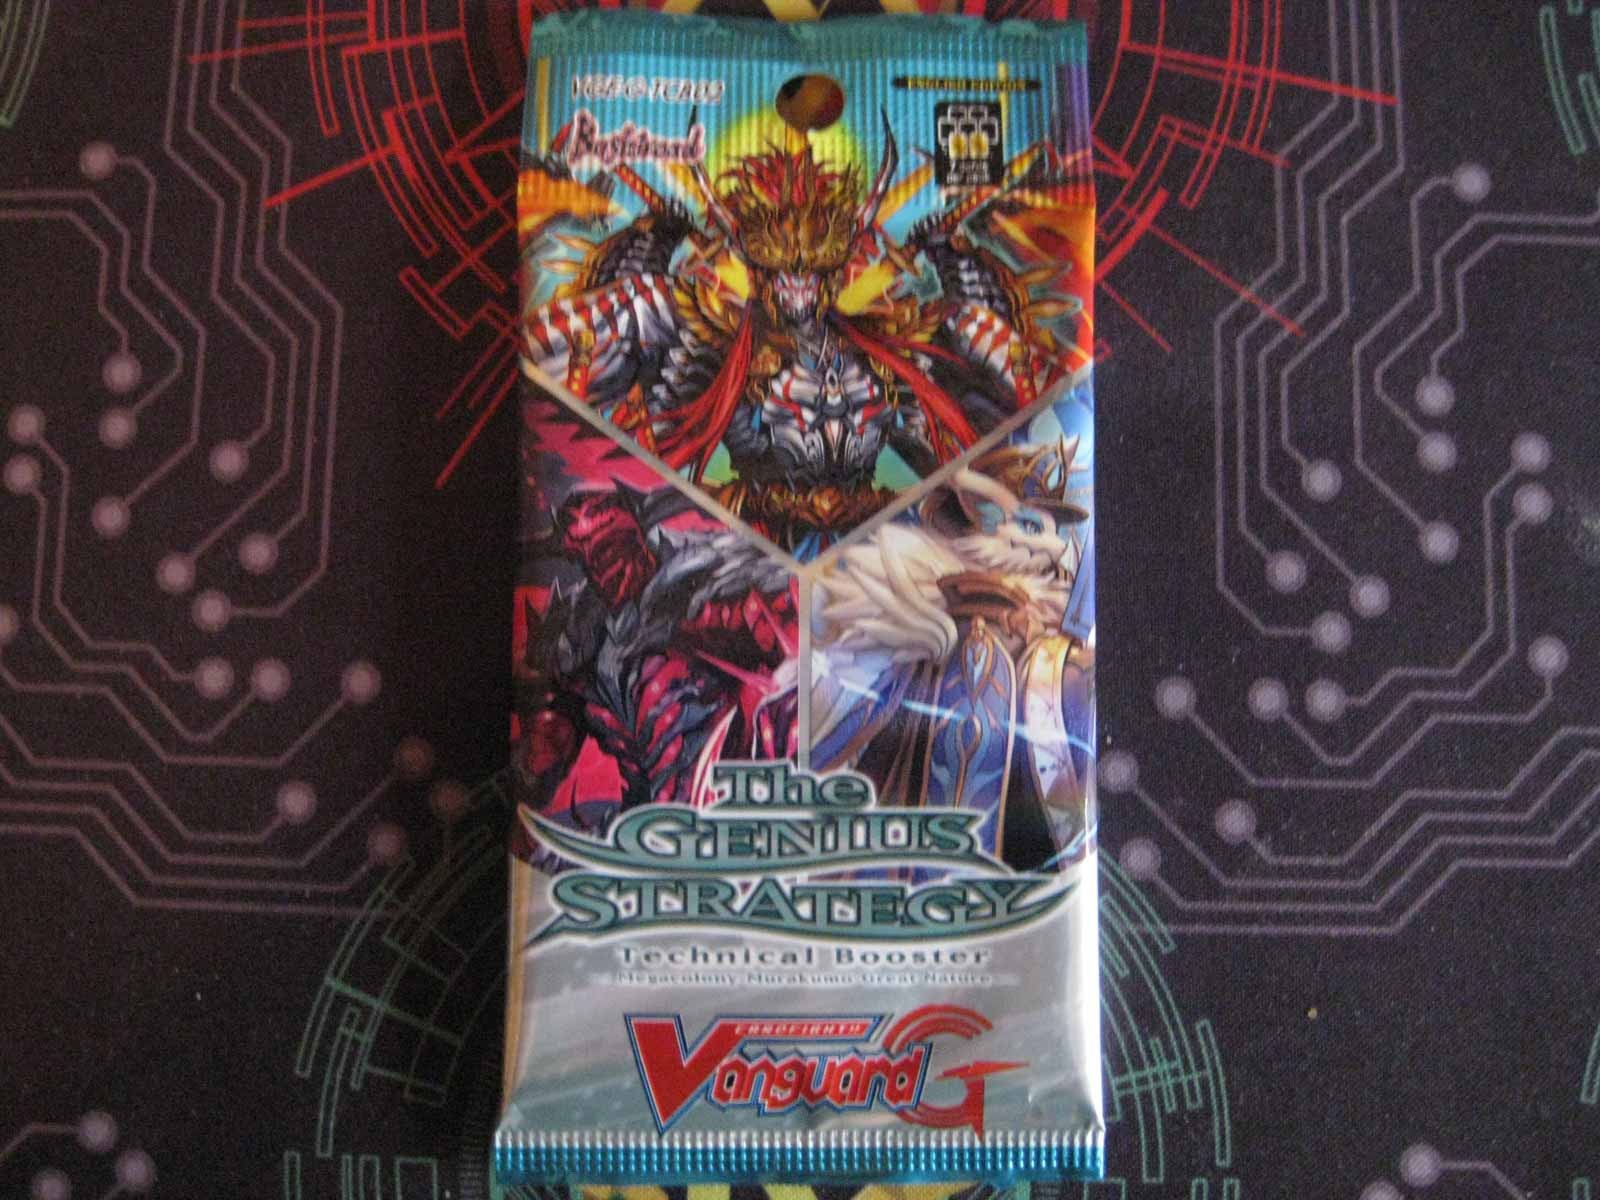 Technical Booster Pack: The Genius Strategy VGE-G-TCB02